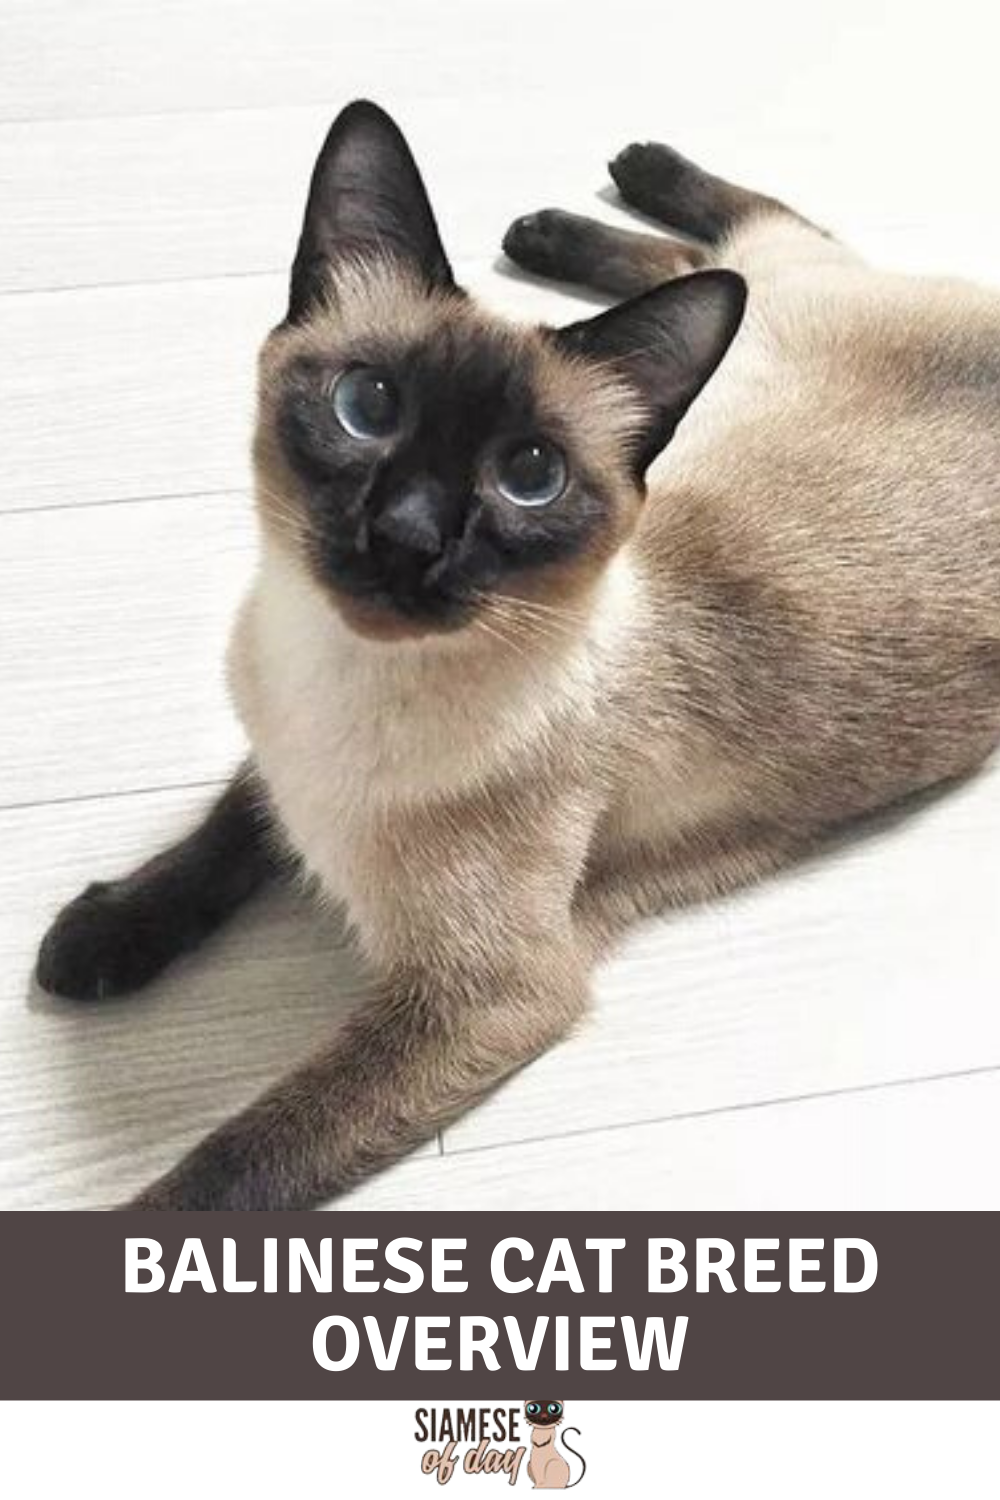 Balinese Cats Weigh Up To 6 To 11 Pounds And They Are About A Foot And A Half Long These Are Medium Sized Cats And They Hav